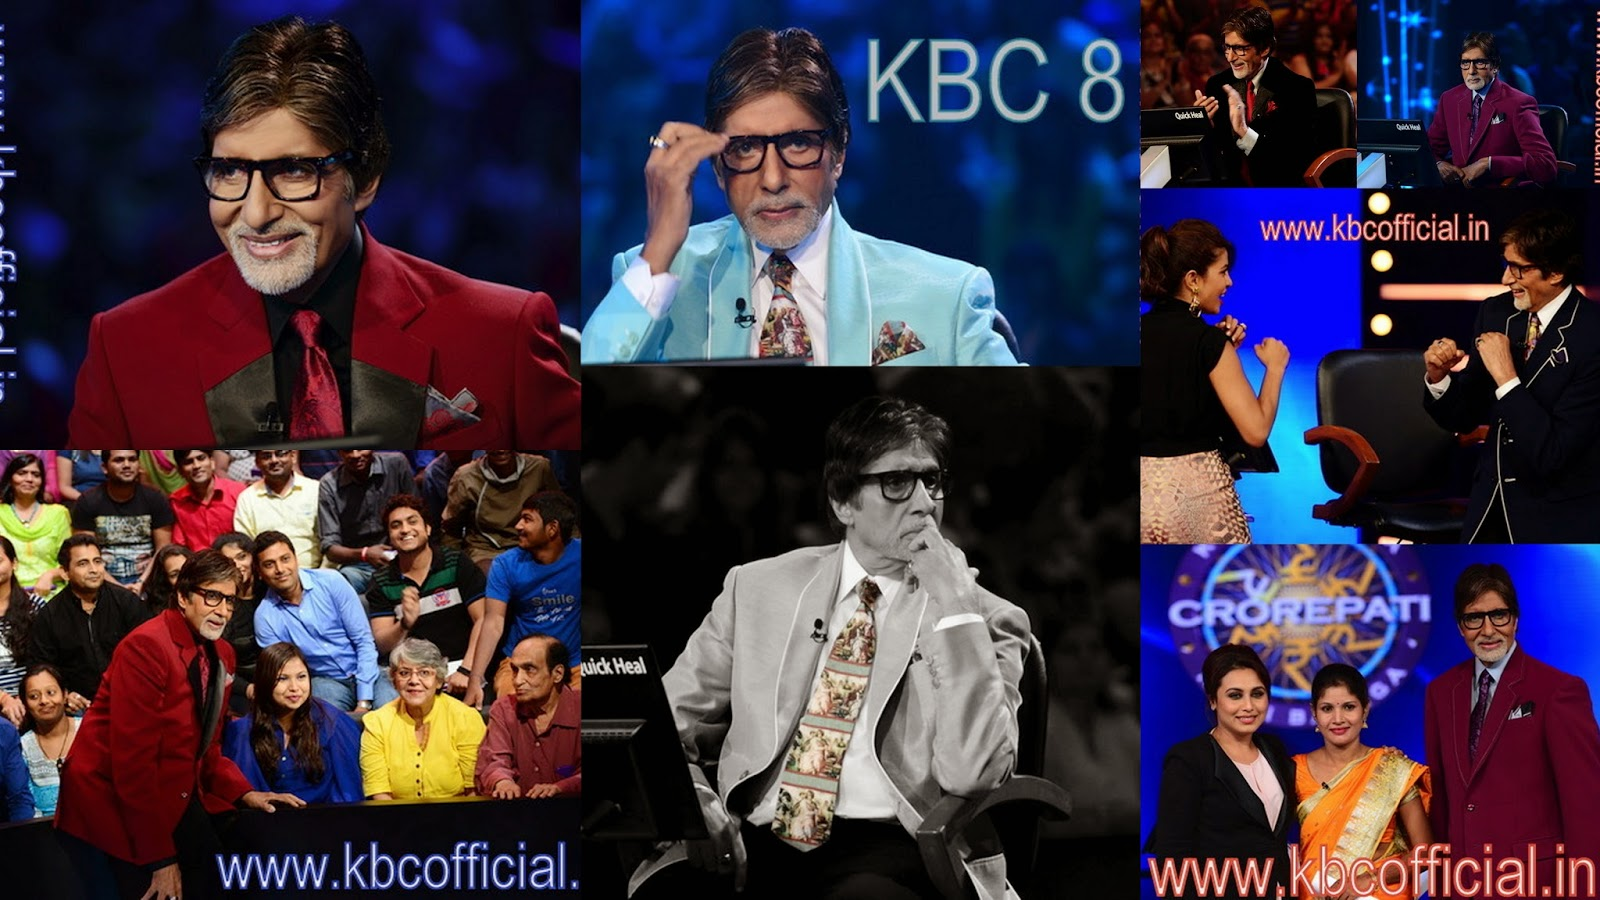 GBJJ Ghar Baithe Jeeto Jackpot Question KBC Blog KBC official website season 8 grand premier